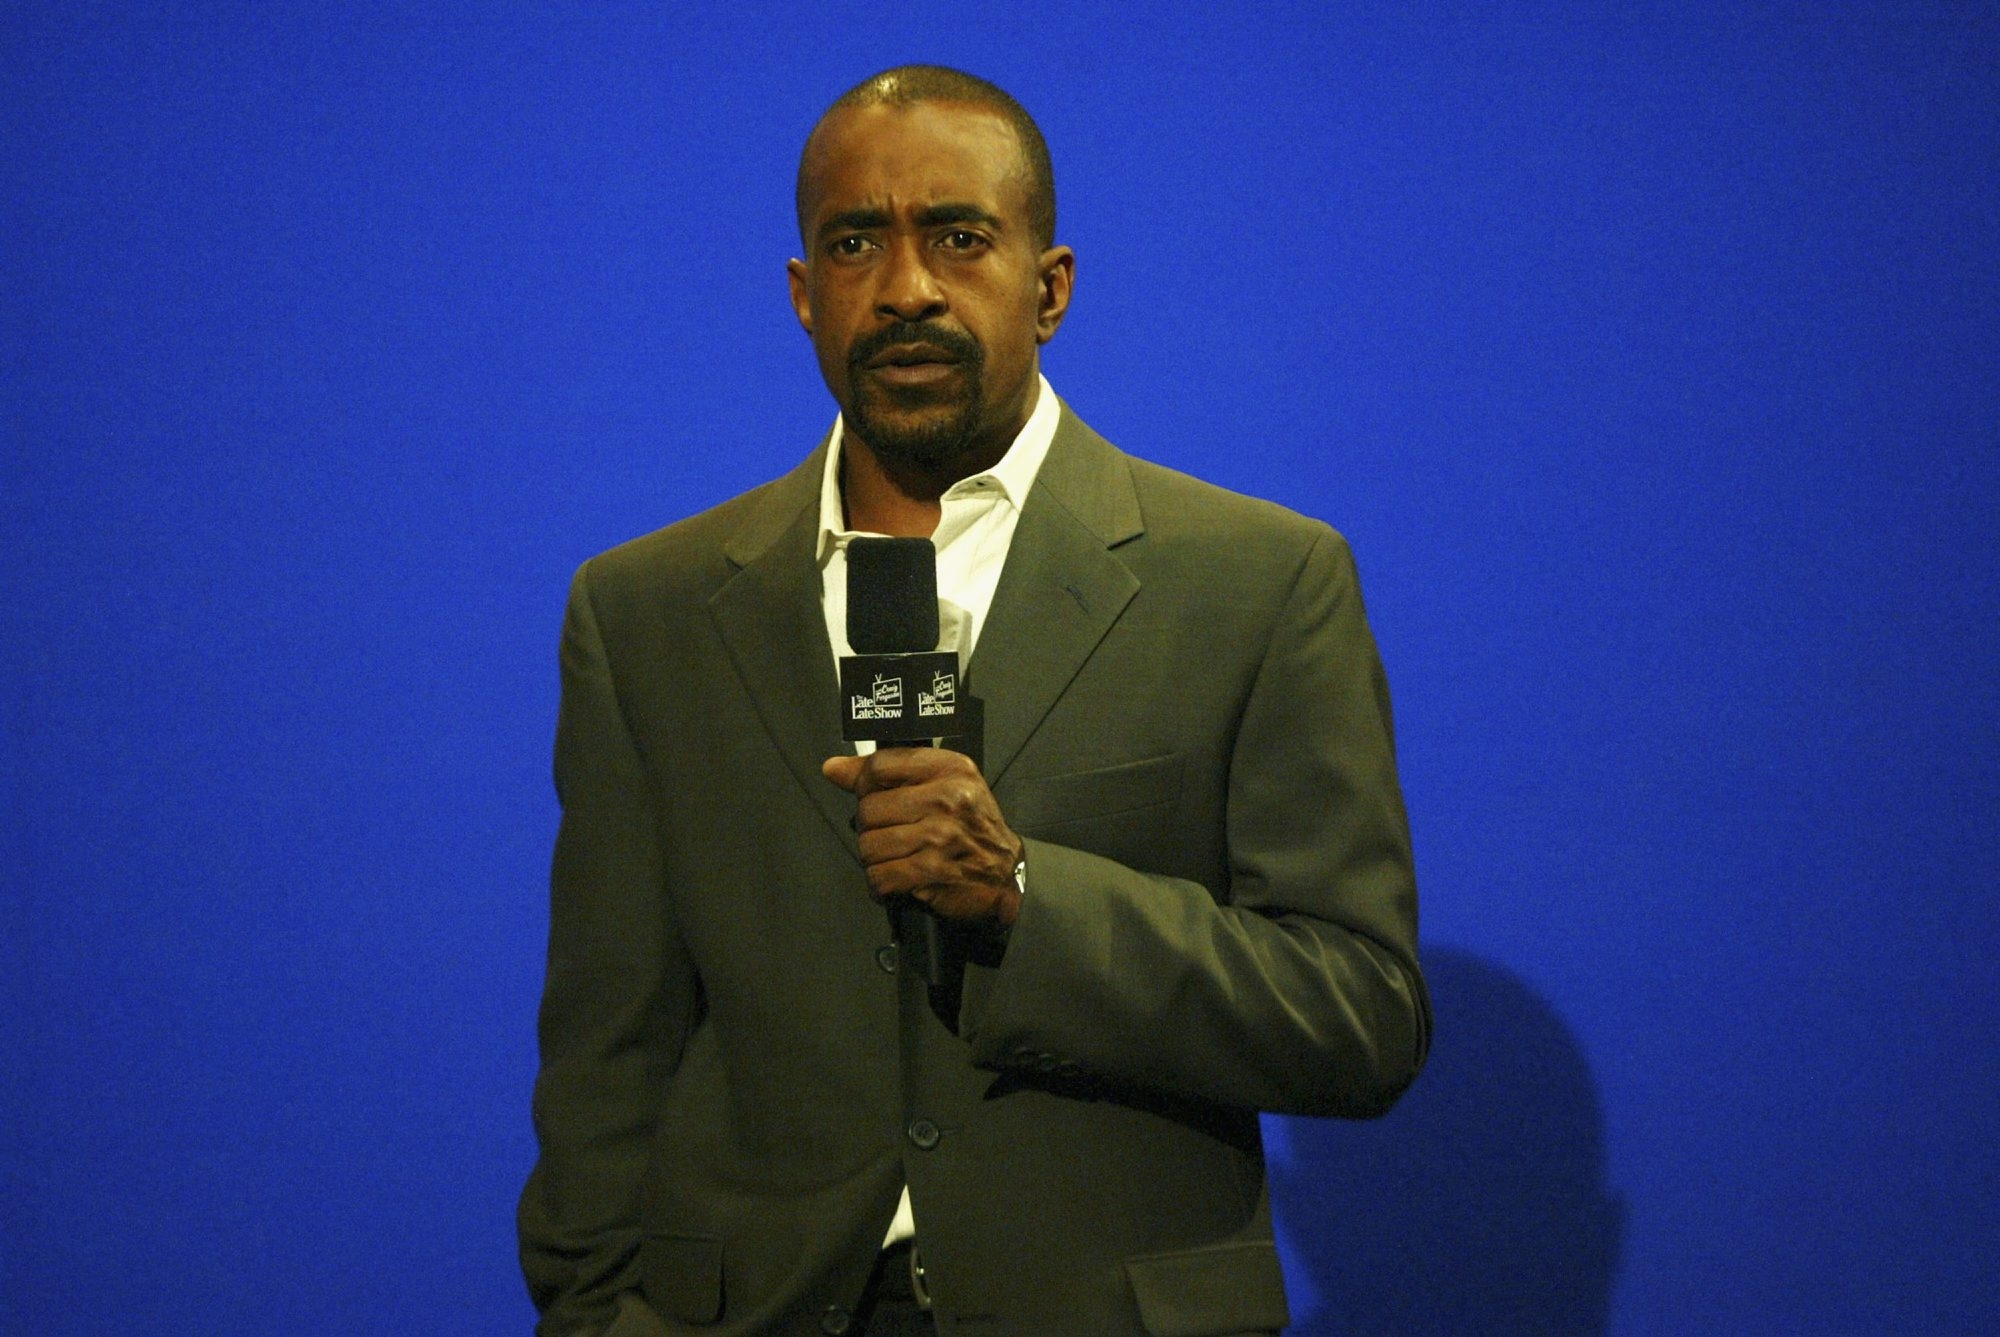 Comedian Tim Meadows will perform at Helium Comedy Club. (Getty Images)